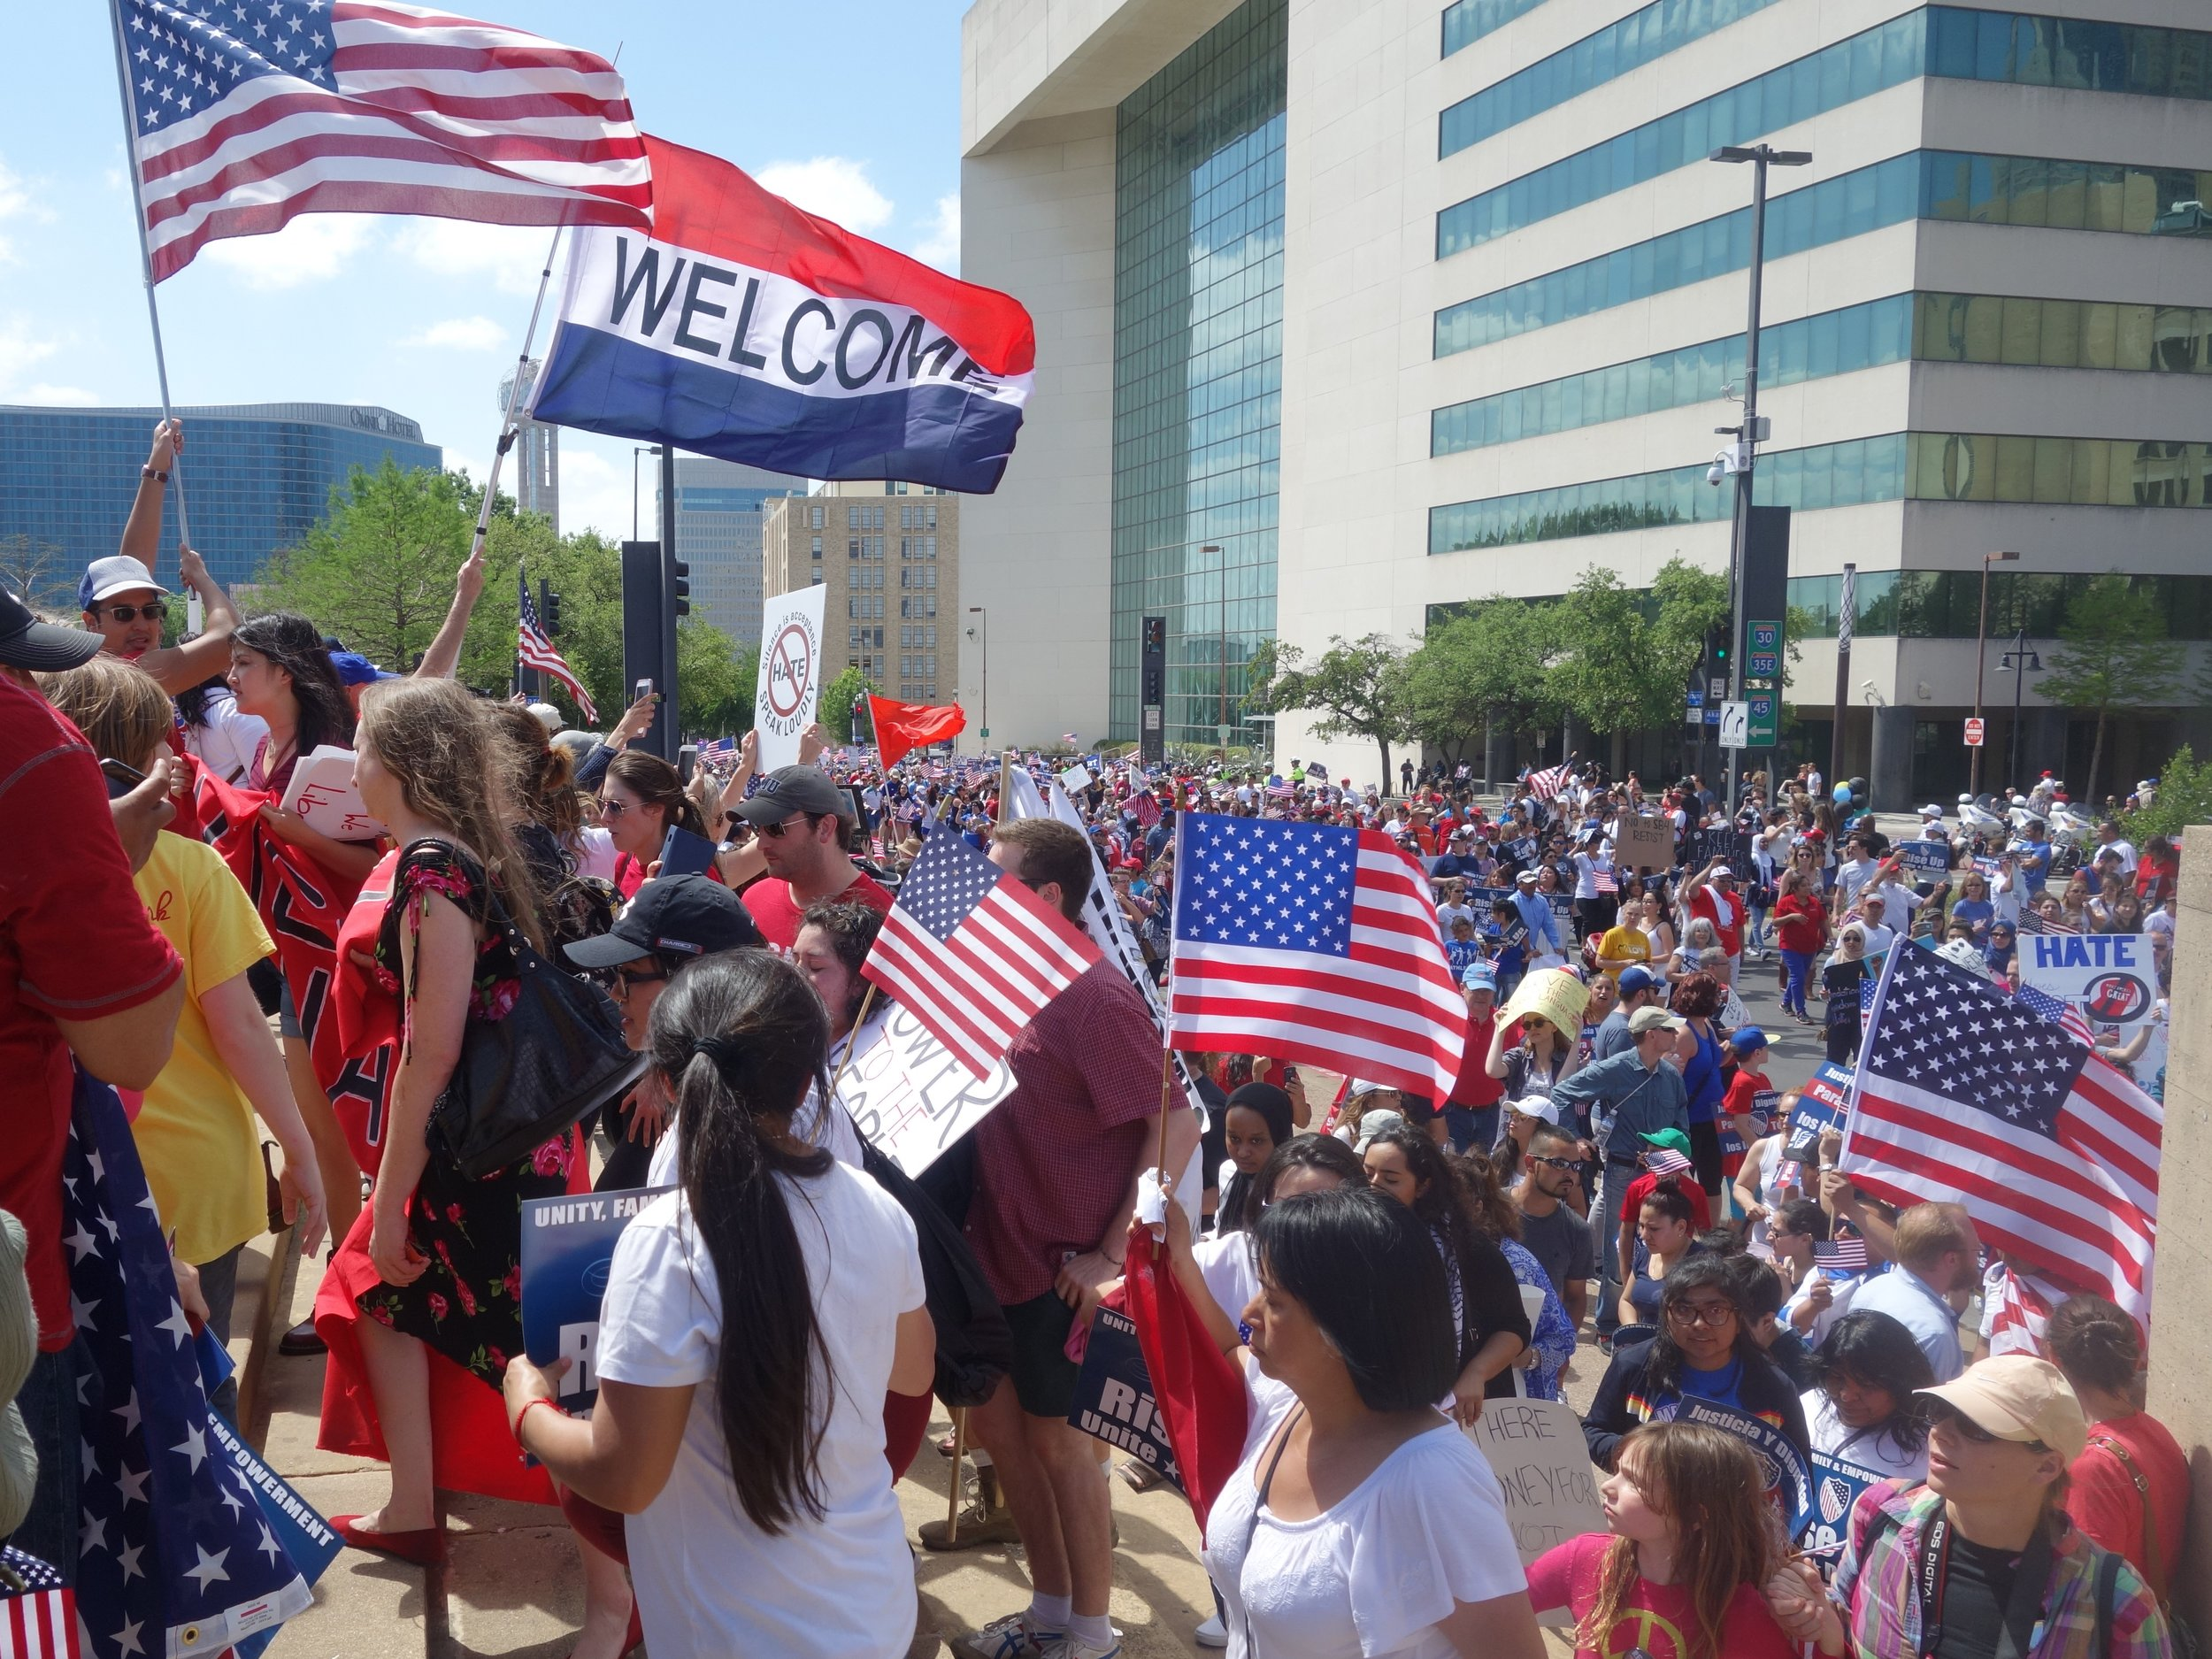 I was proud to speak Spanish and welcome diversity to my country.